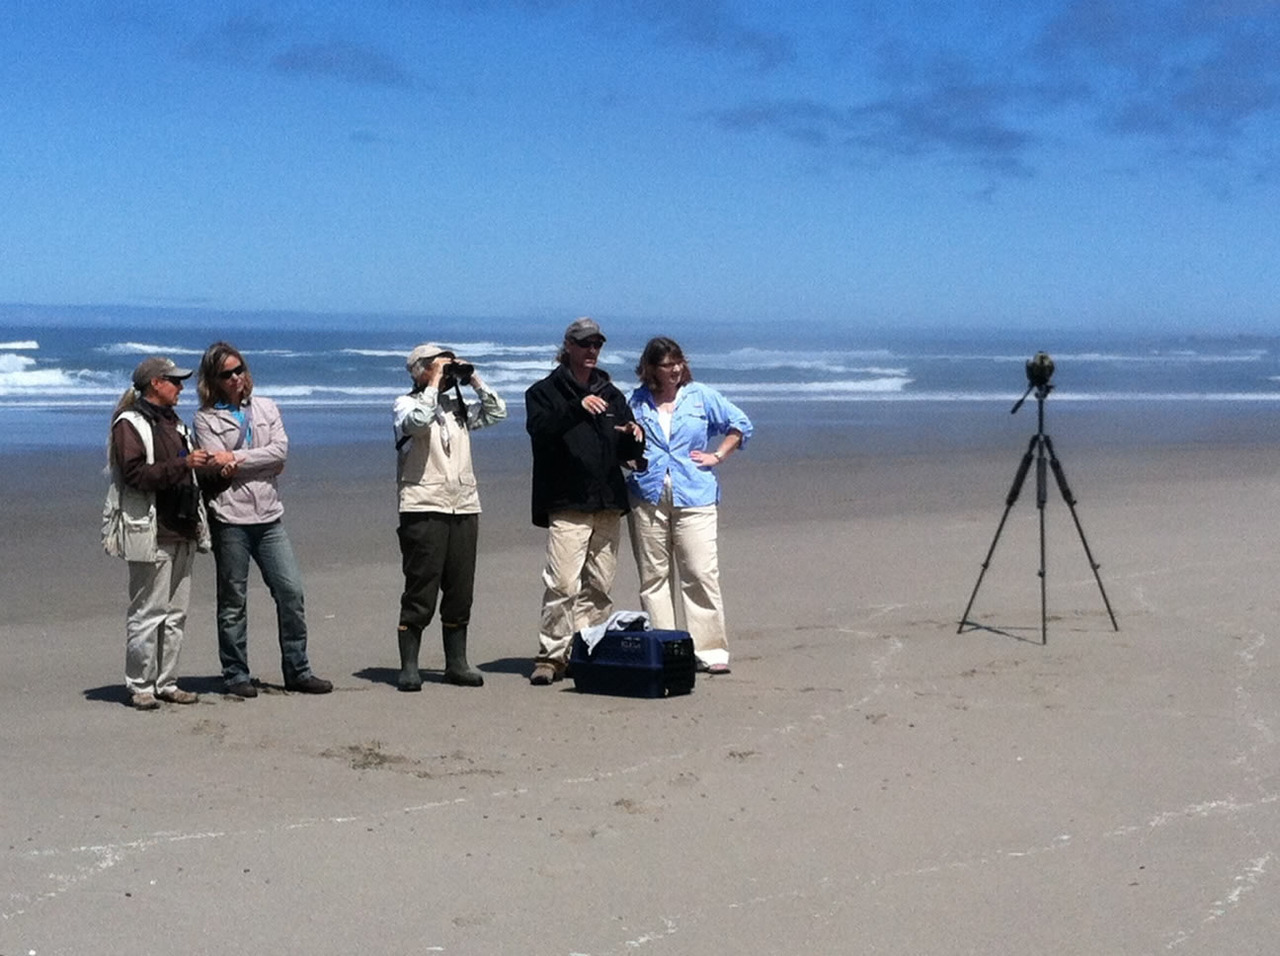 Our USFWS Pacific Region employees helped release a ready to fledge plover after a recuperation at the Oregon Coast Aquarium. Photo credit: USFWS